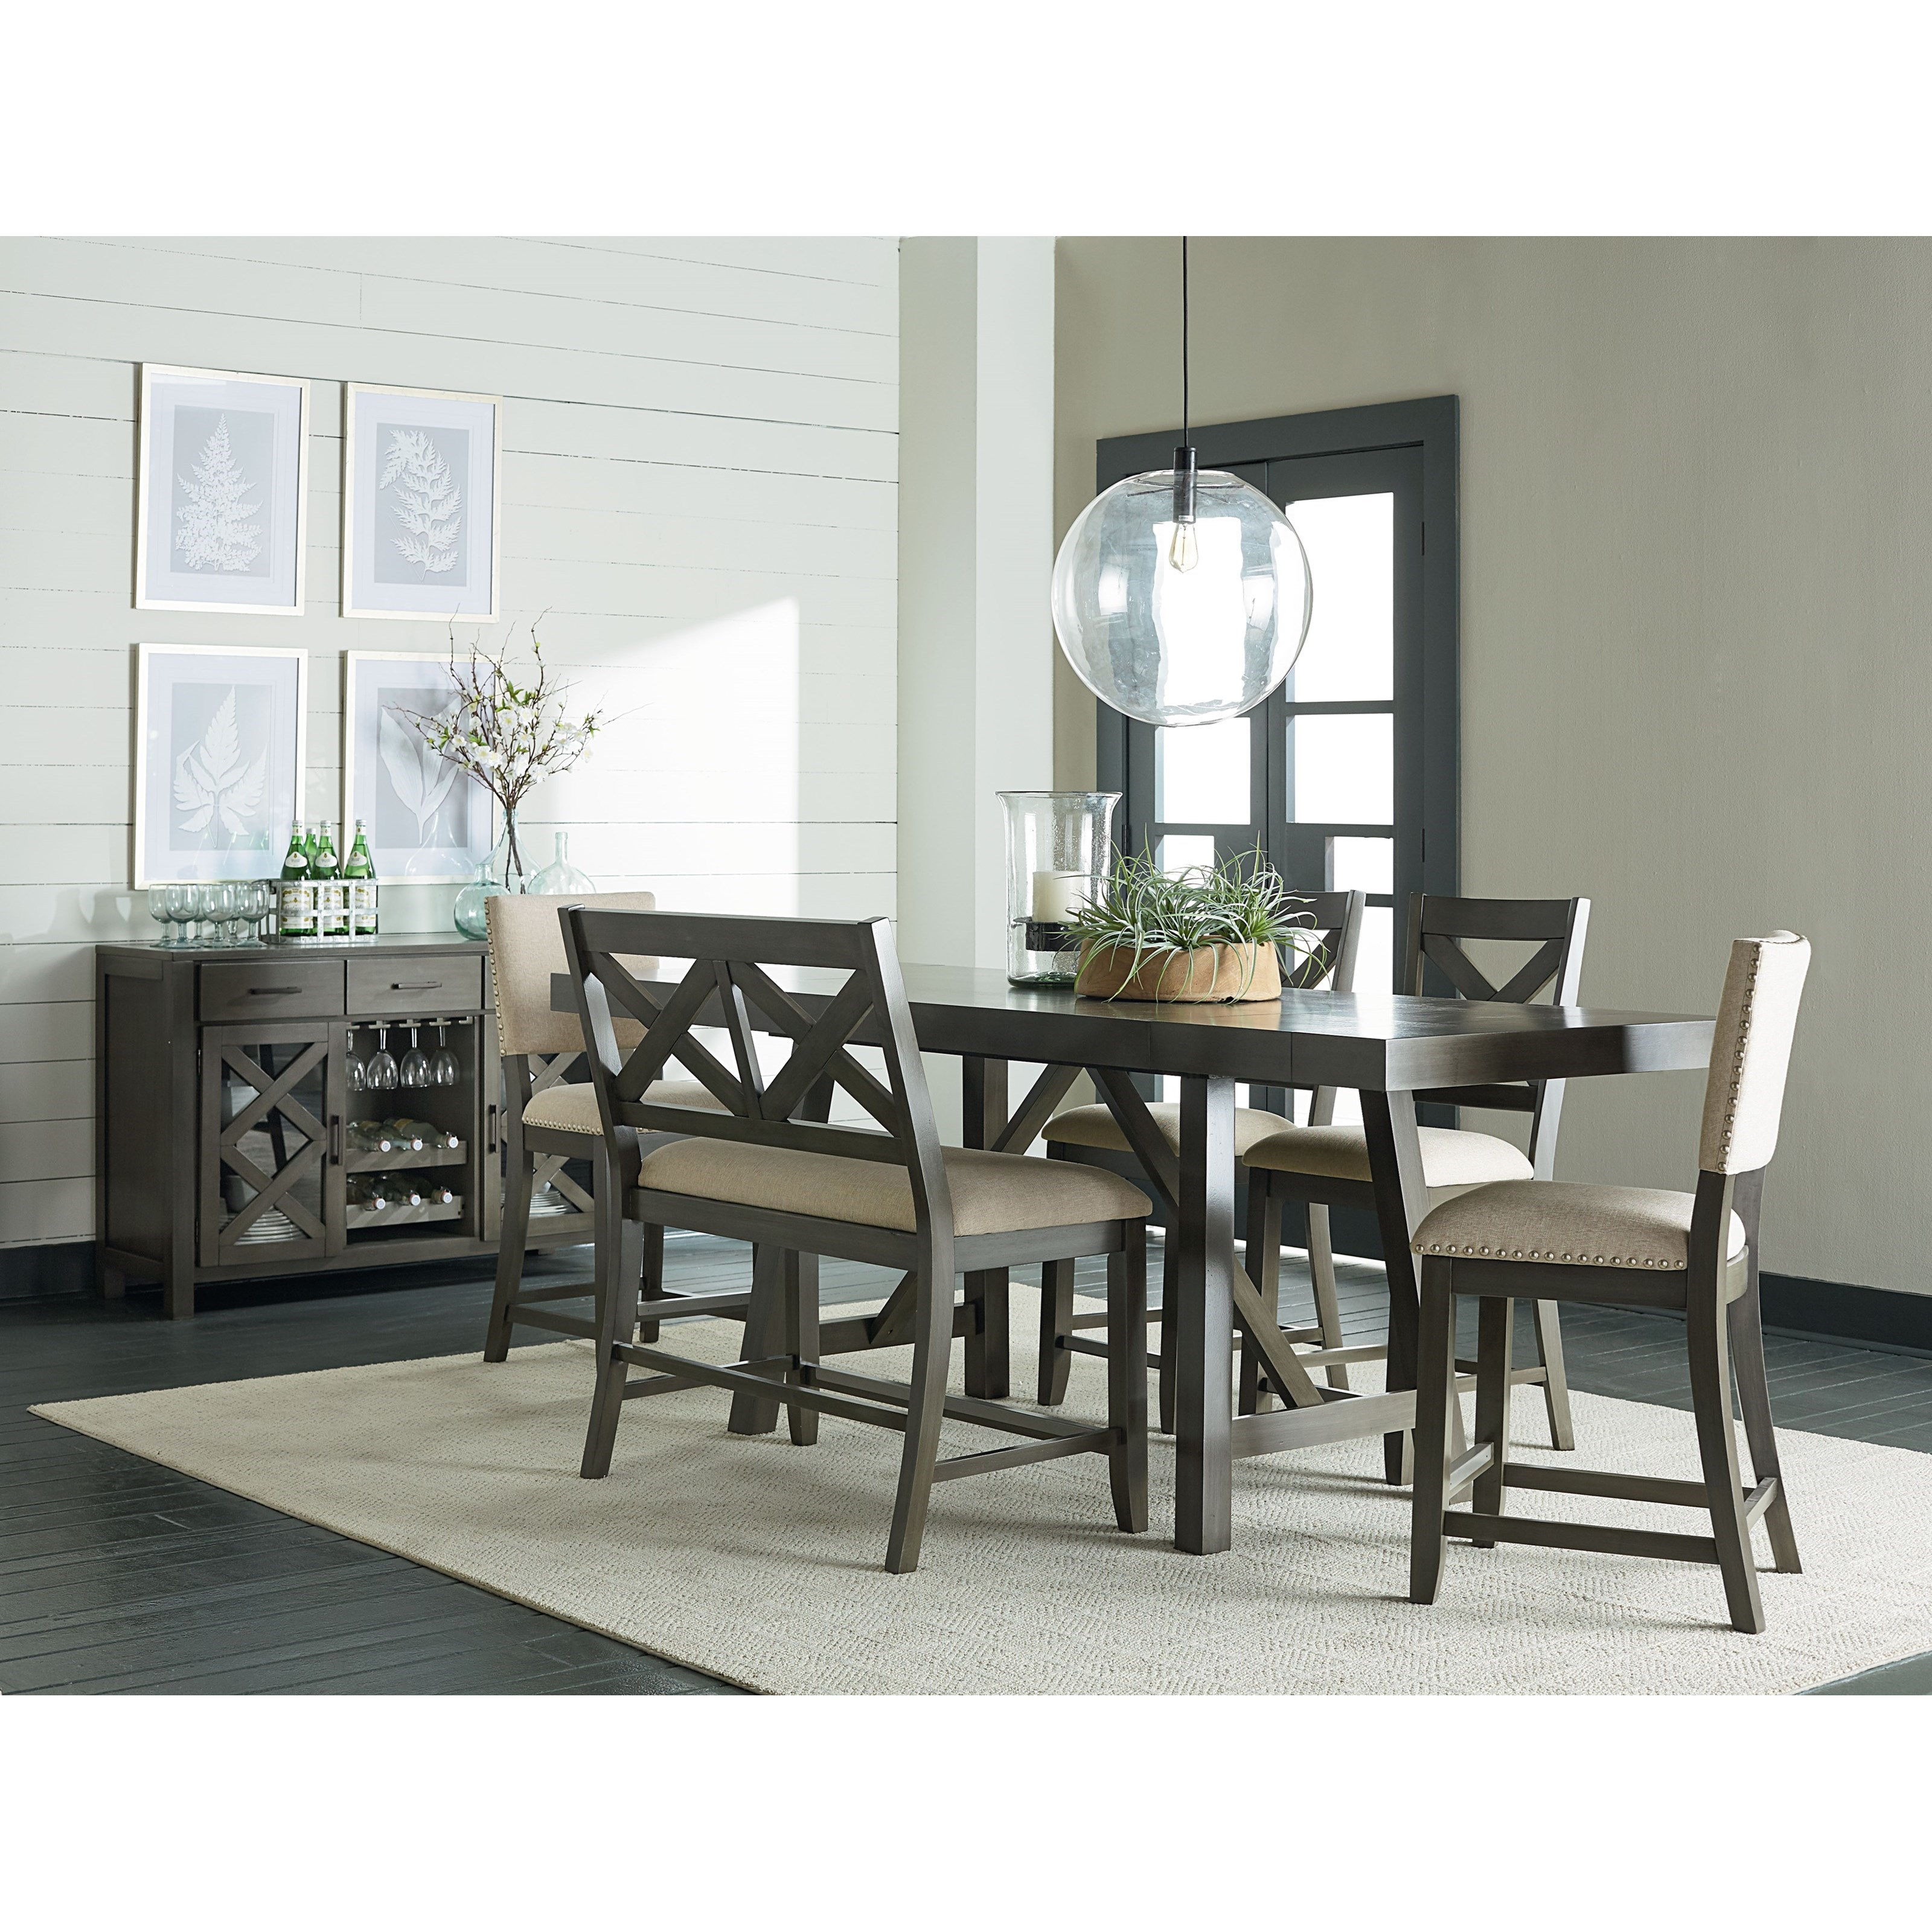 Standard Furniture Omaha Grey 6 Piece Counter Height Trestle Table Dining Set Dunk Amp Bright